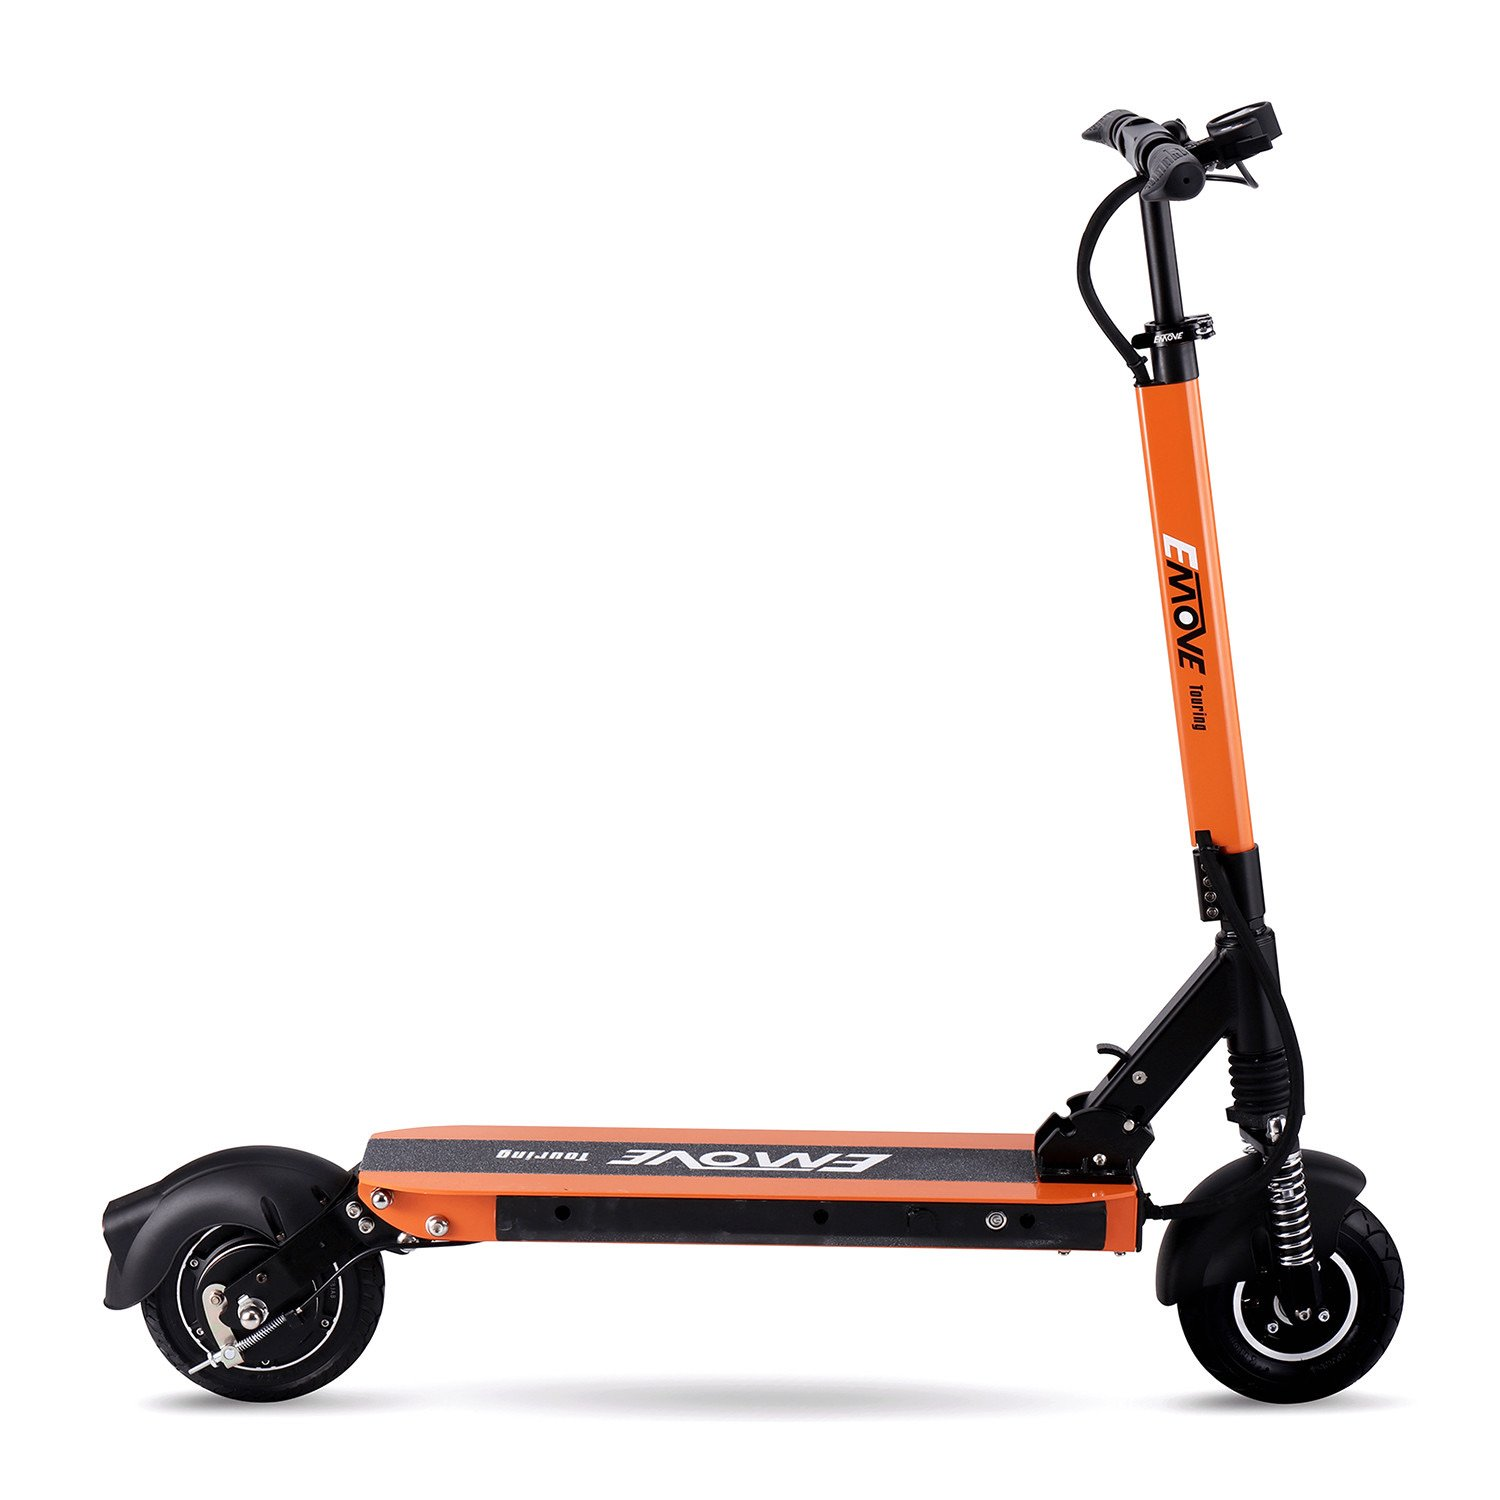 eMove touring review 2020